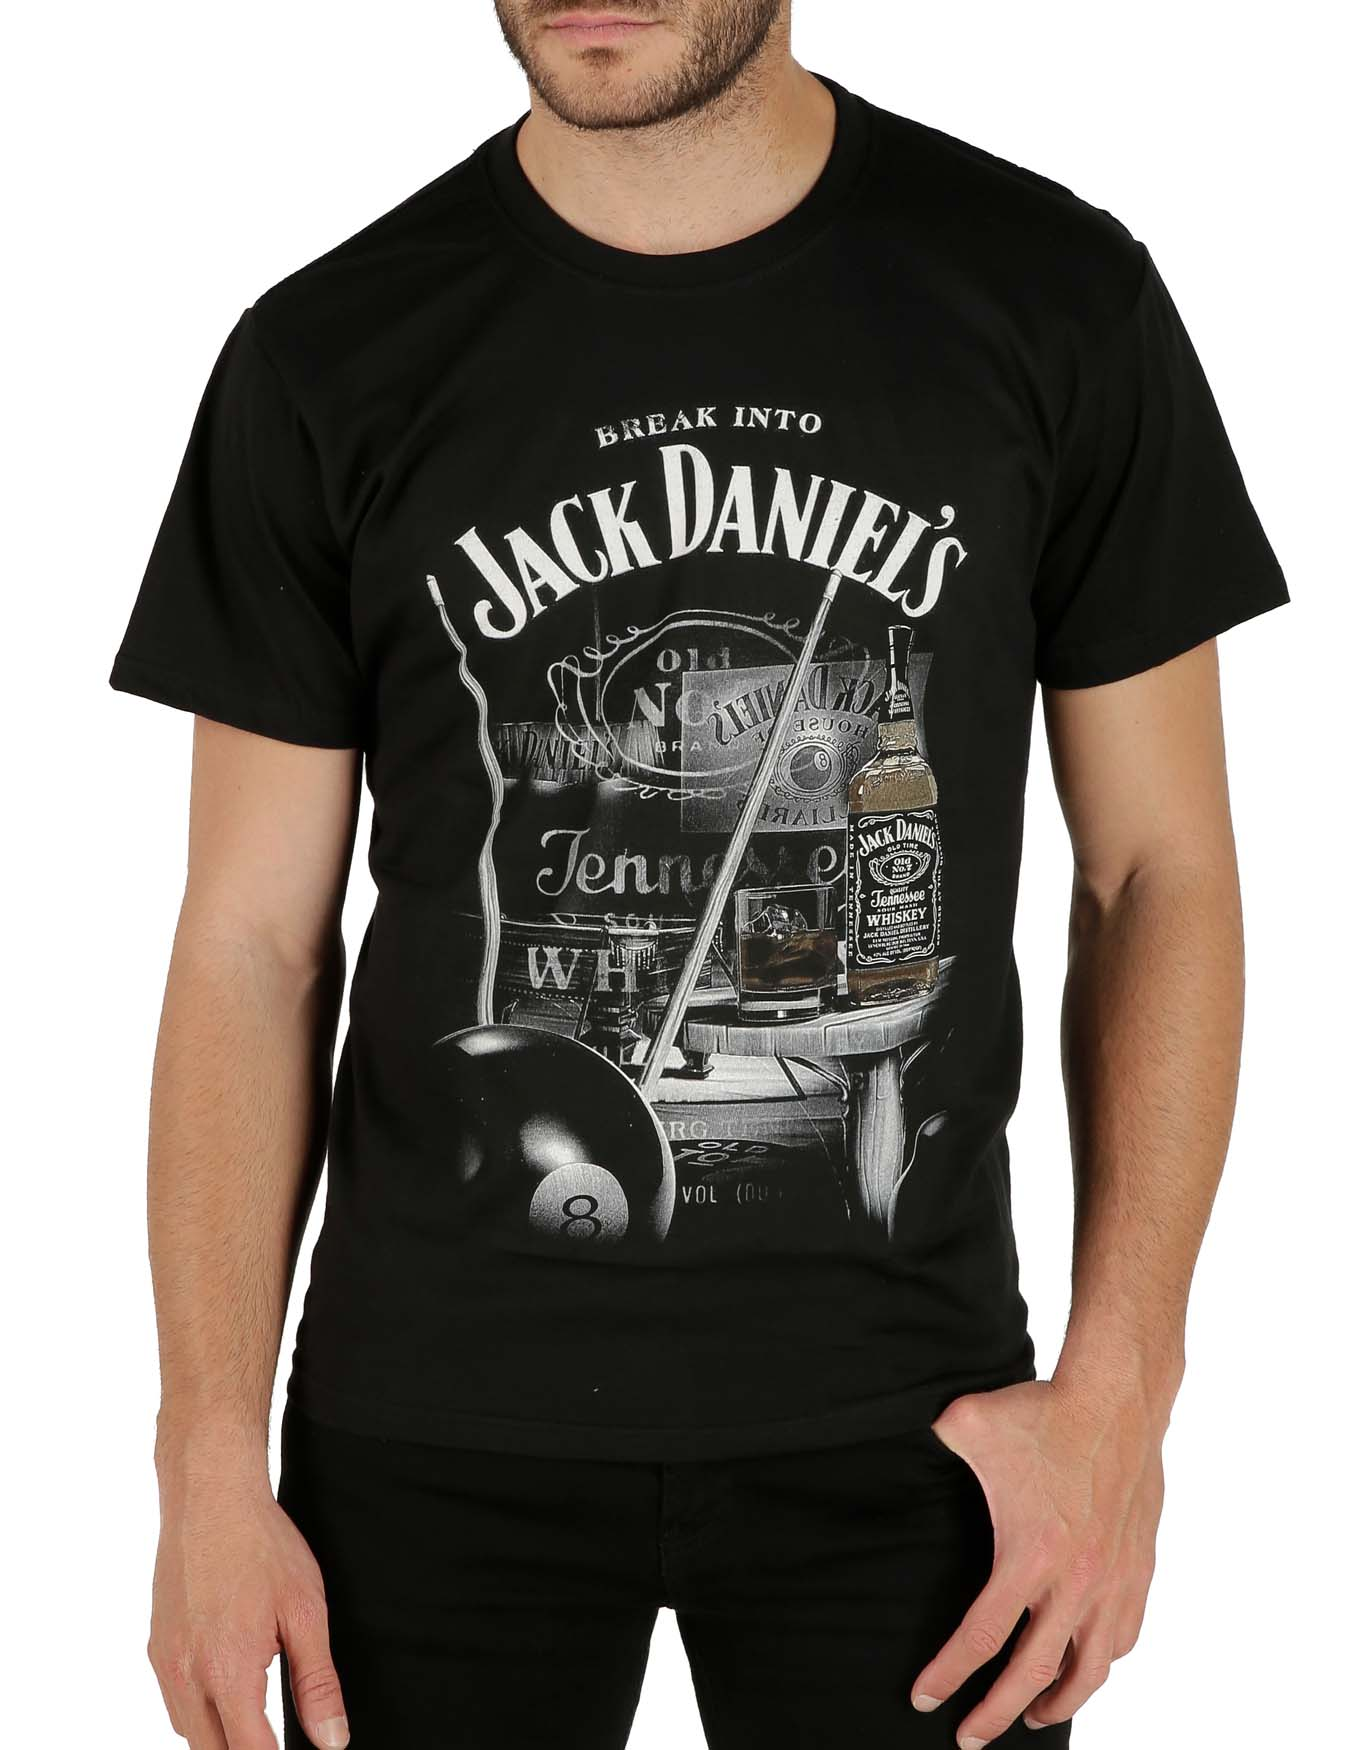 Ανδρικό T-Shirt Break Into Jack Daniel's (κωδ. 1752251) - KEYA - 1752251